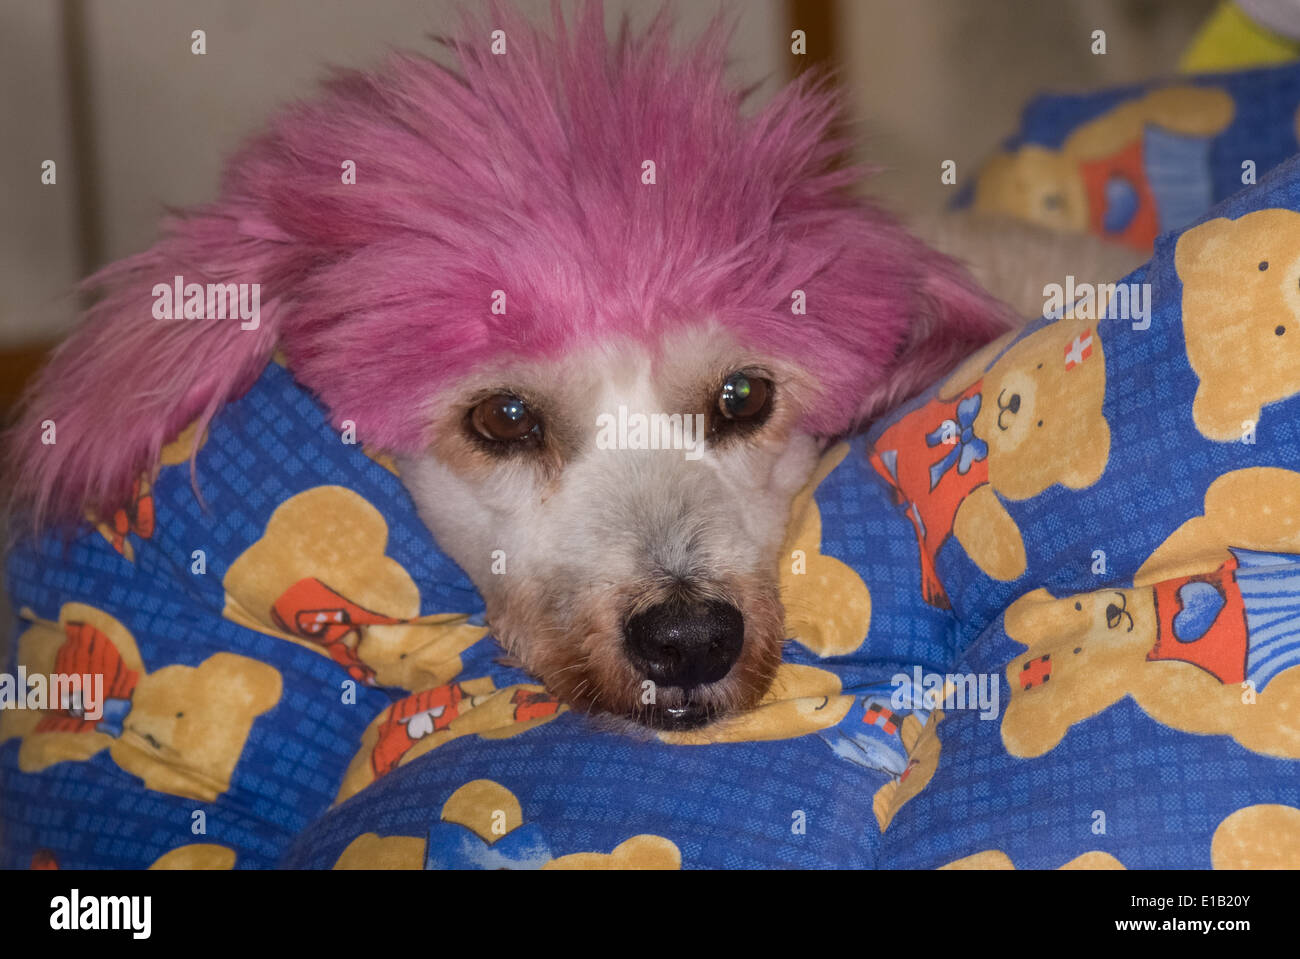 Amusing poodle dog with dyed pink hair - Stock Image